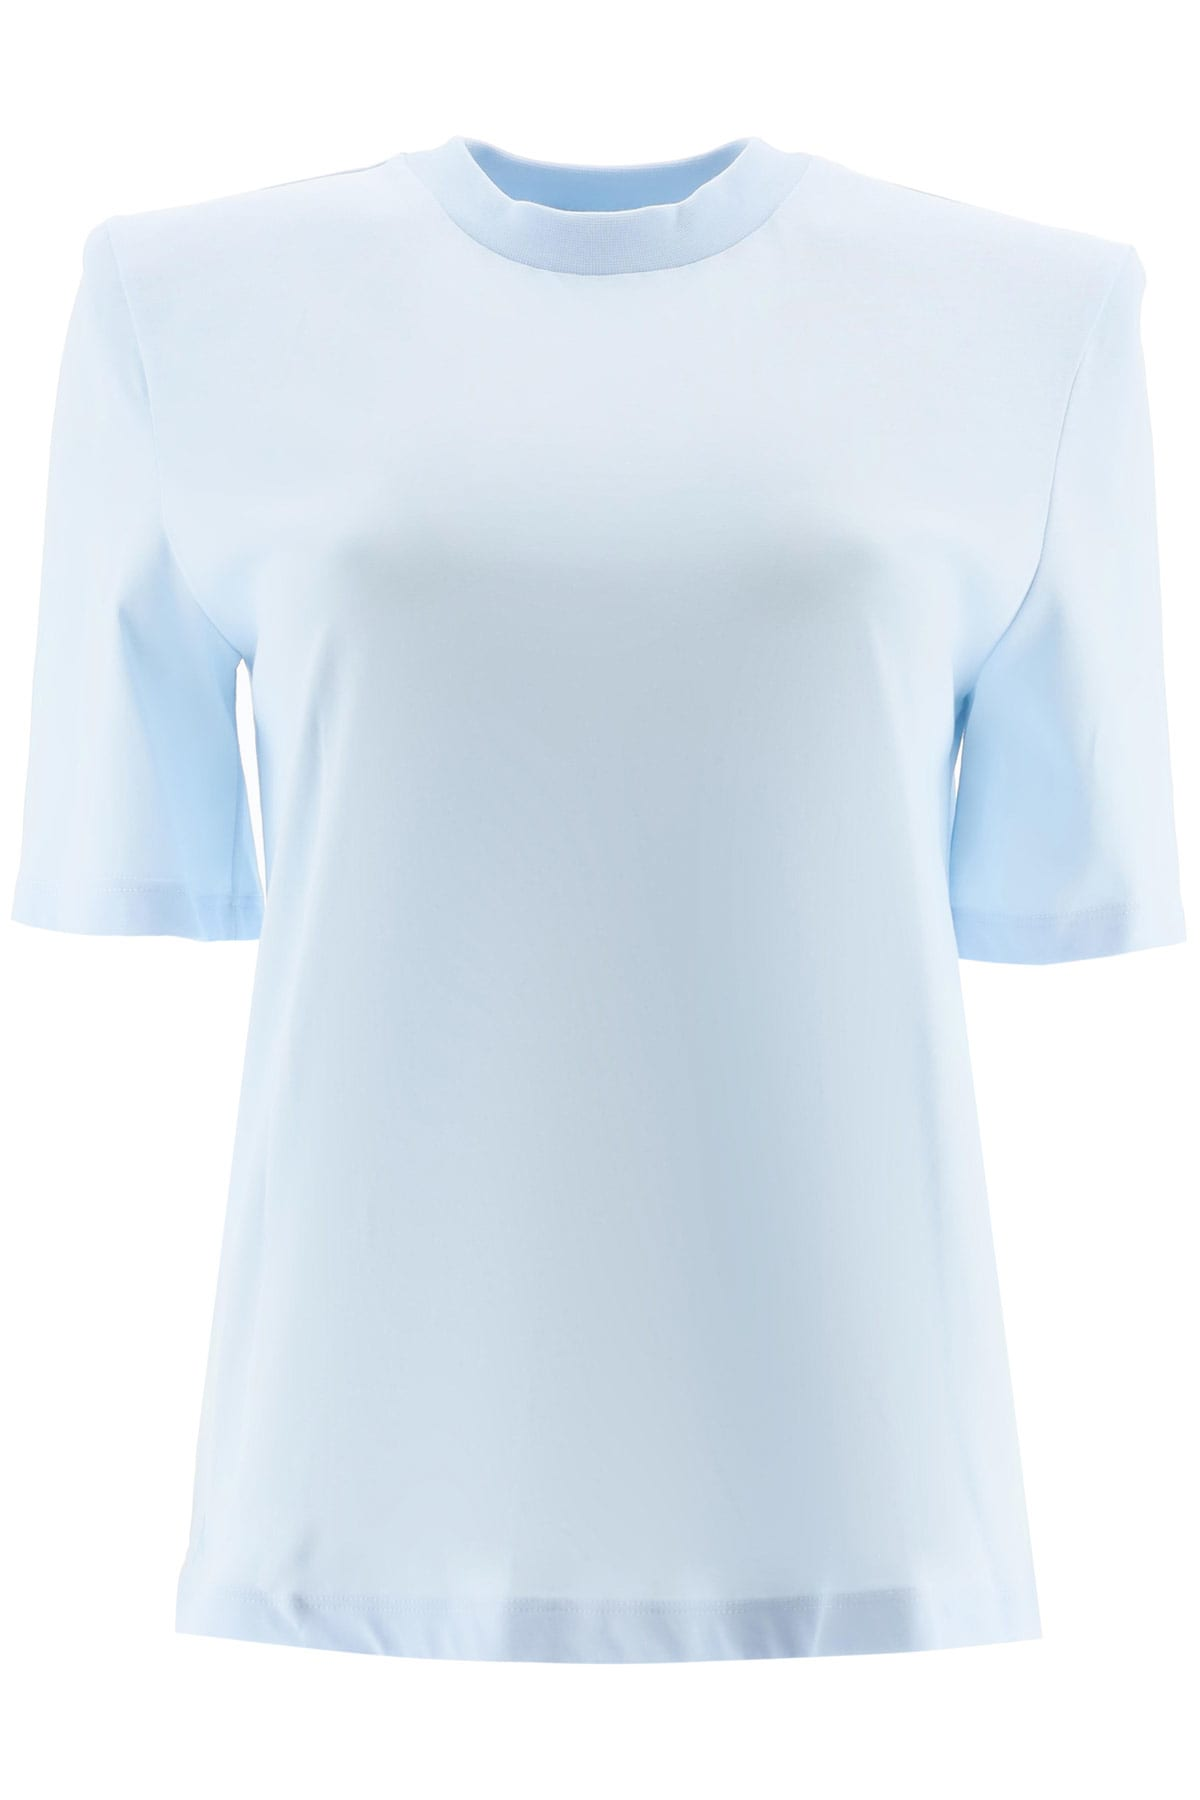 The Attico Bella T-shirt With Padded Shoulders